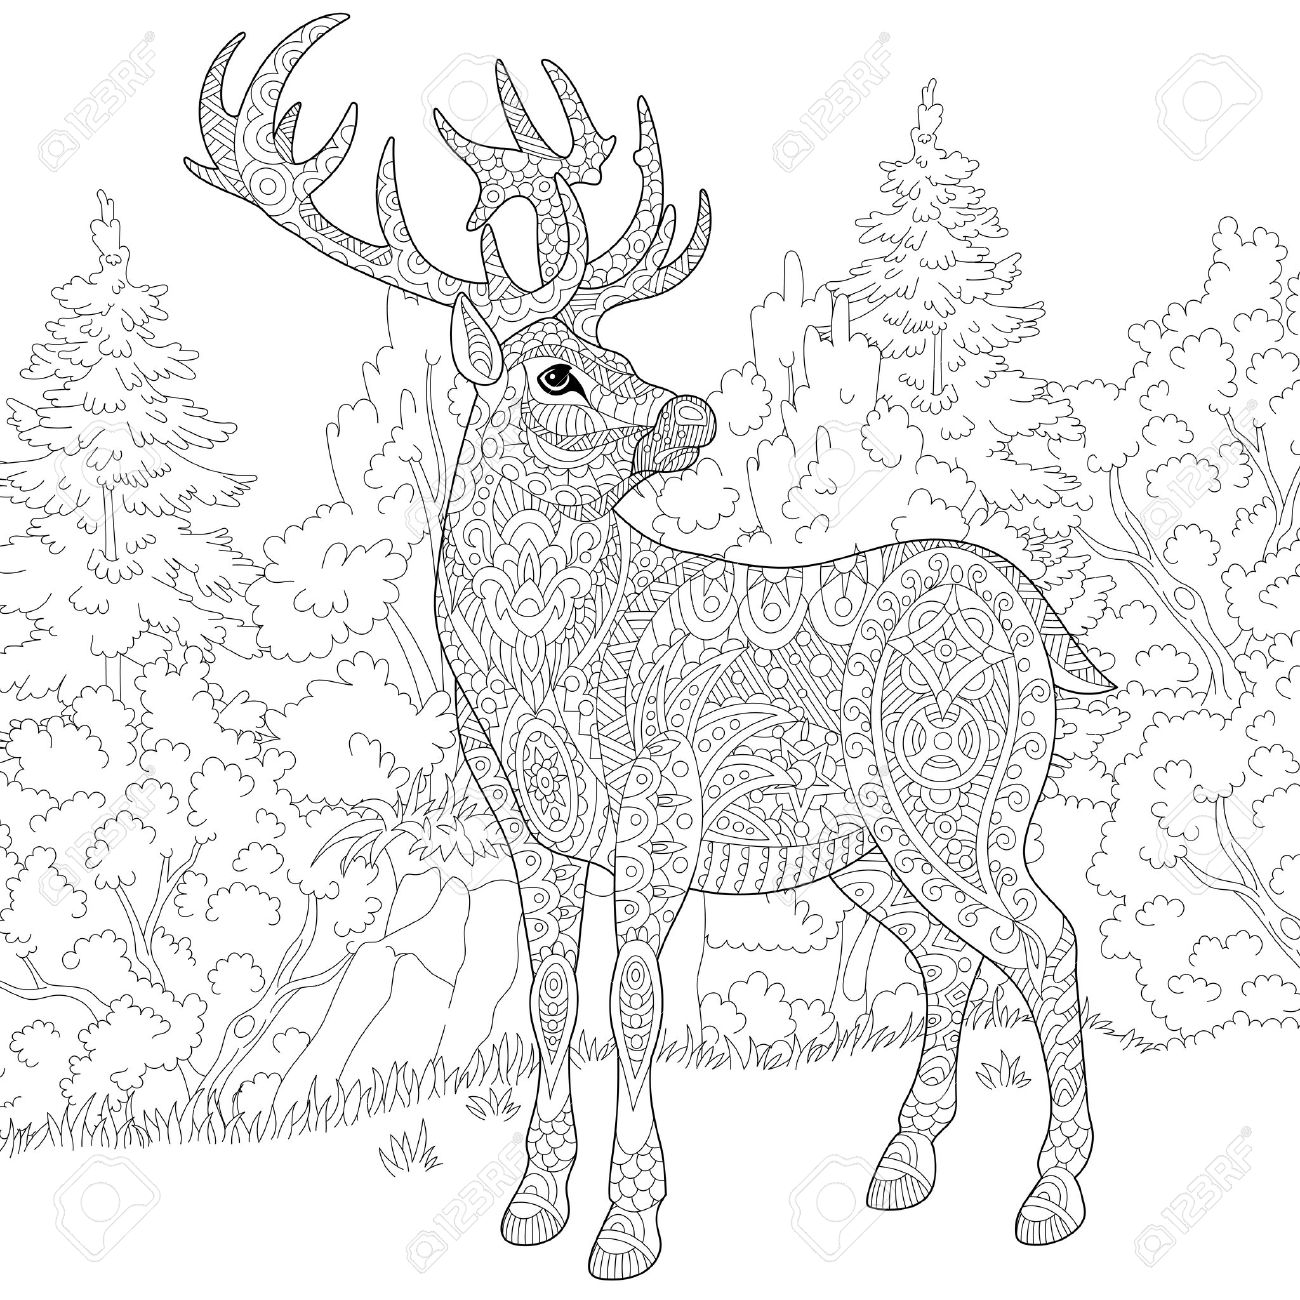 stylized cartoon deer (stag, christmas reindeer). sketch for adult antistress coloring book page, T-shirt emblem, or tattoo with doodle, and floral design elements. - 60323964